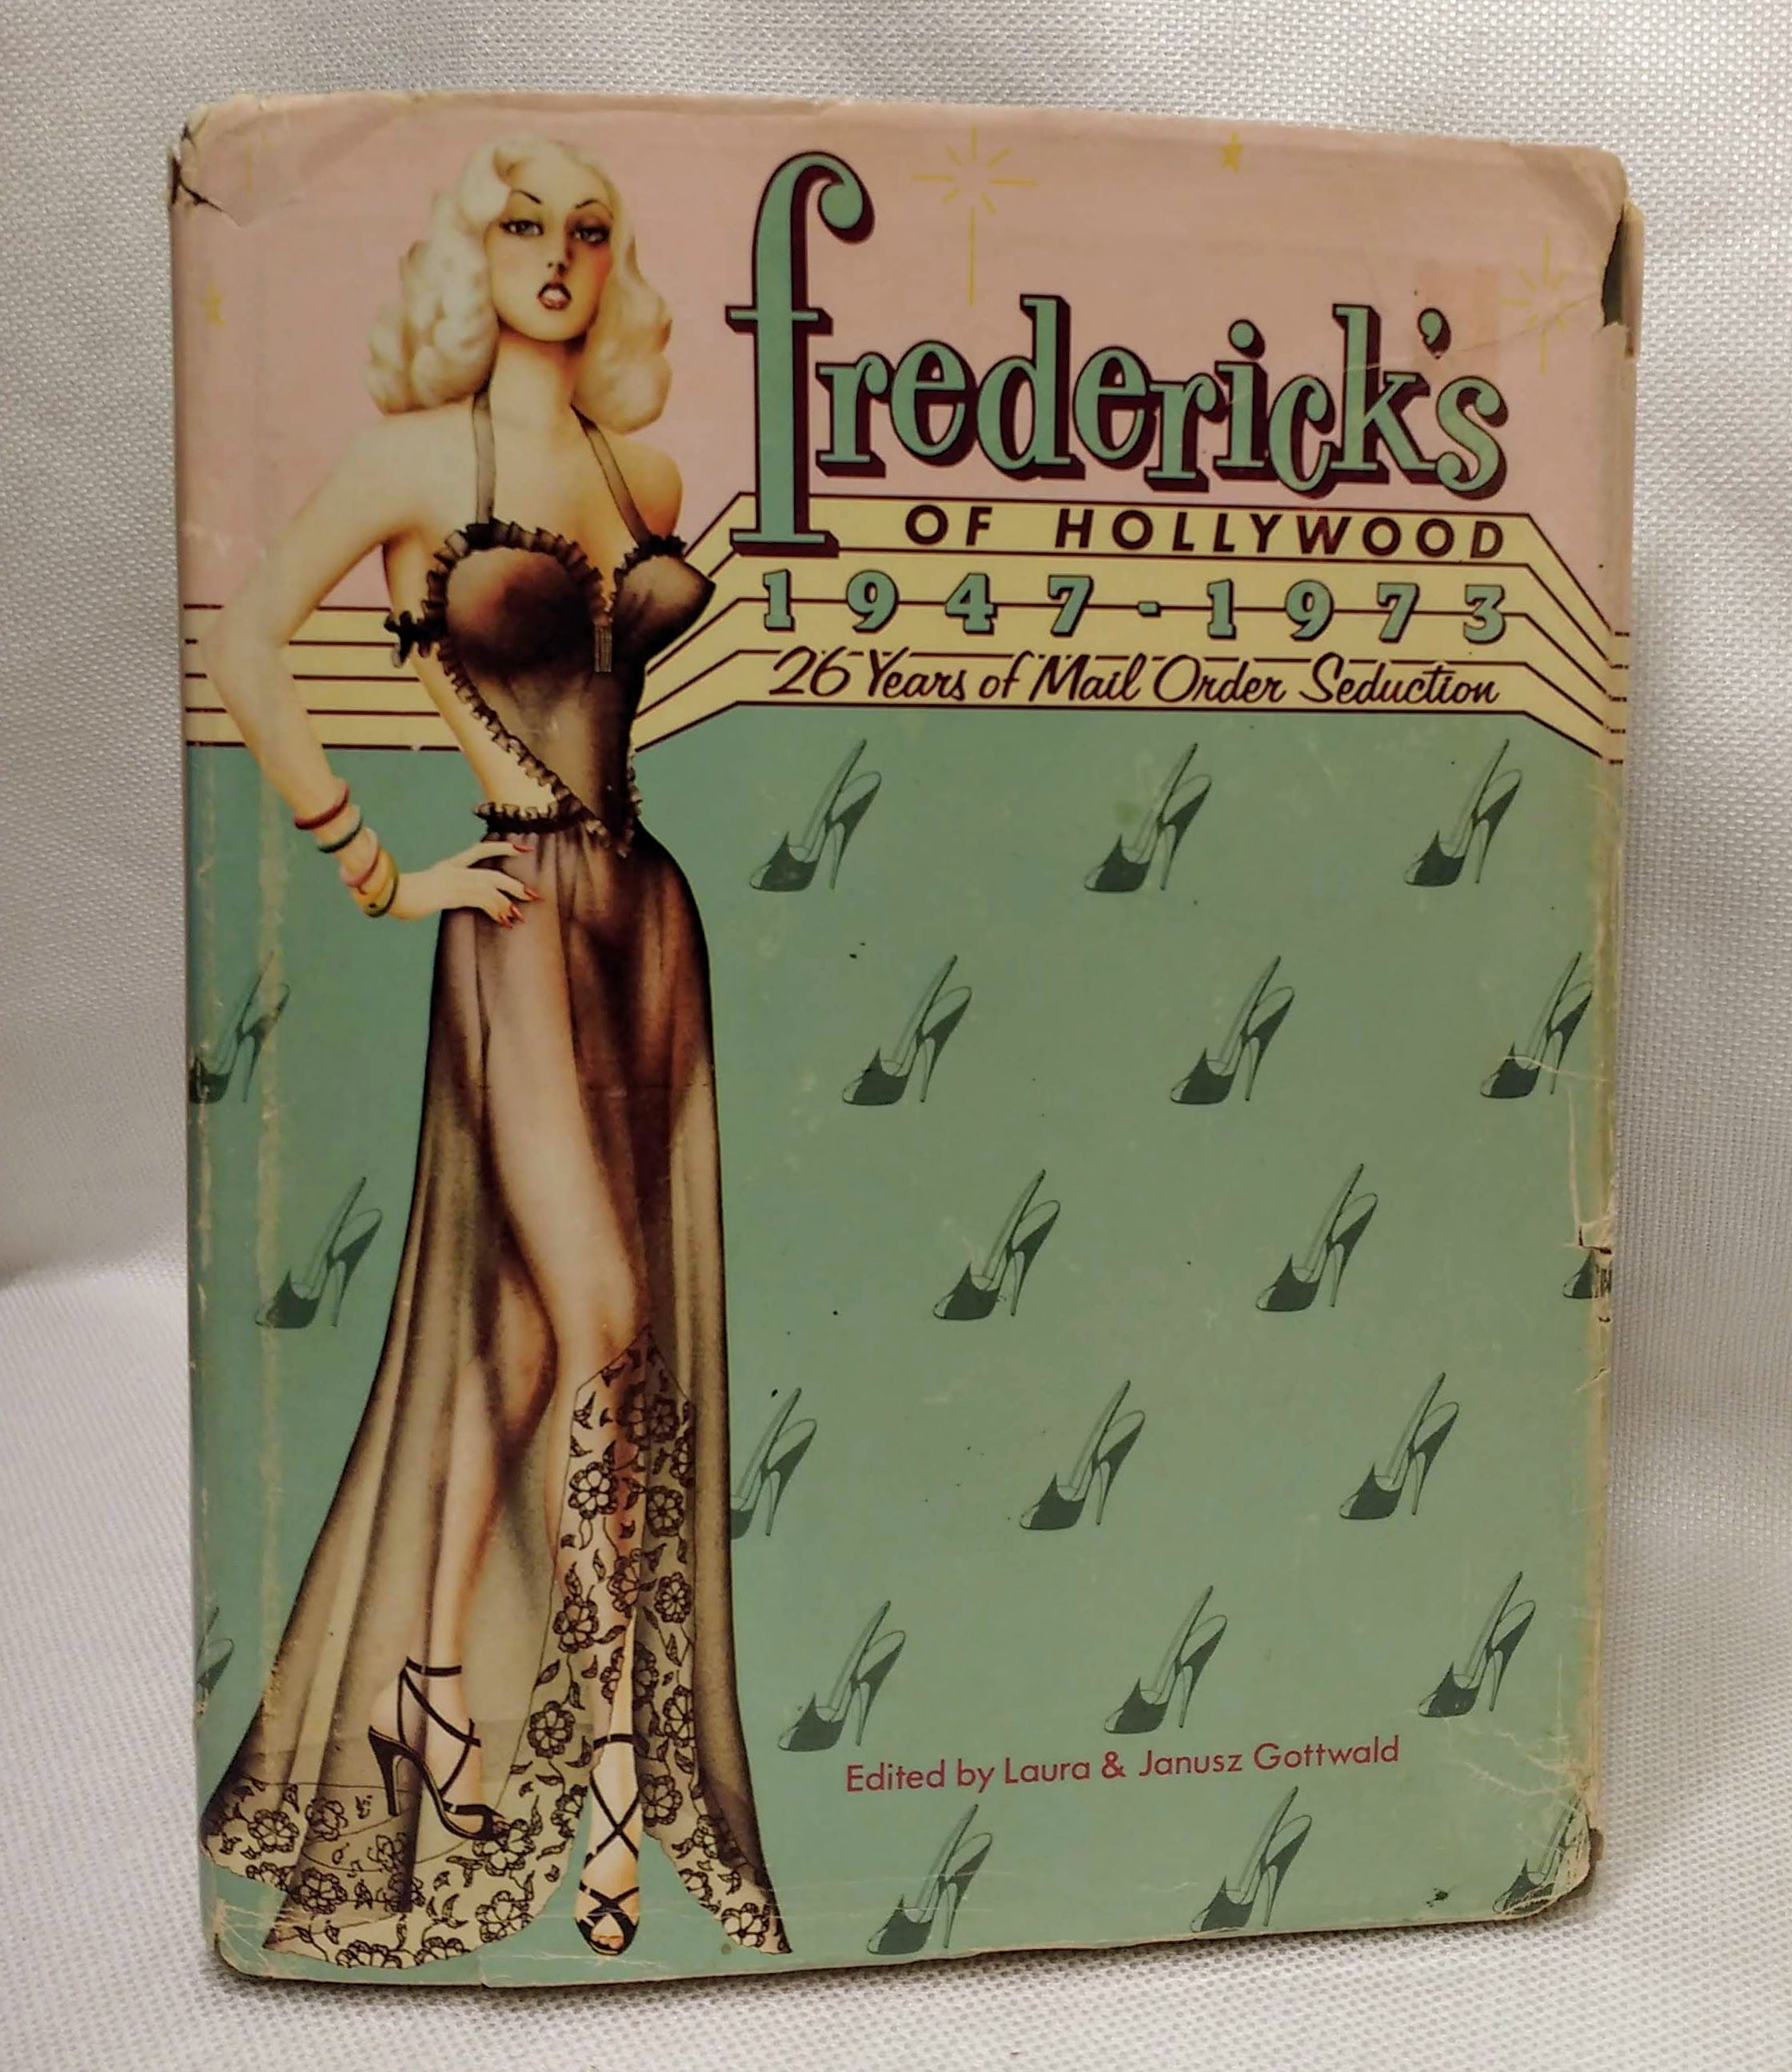 Fredericks of Hollywood, 1947-1973: 26 Years of Mail Order Seduction, Laura Gottwald [Editor]; Janusz Gottwald [Editor];